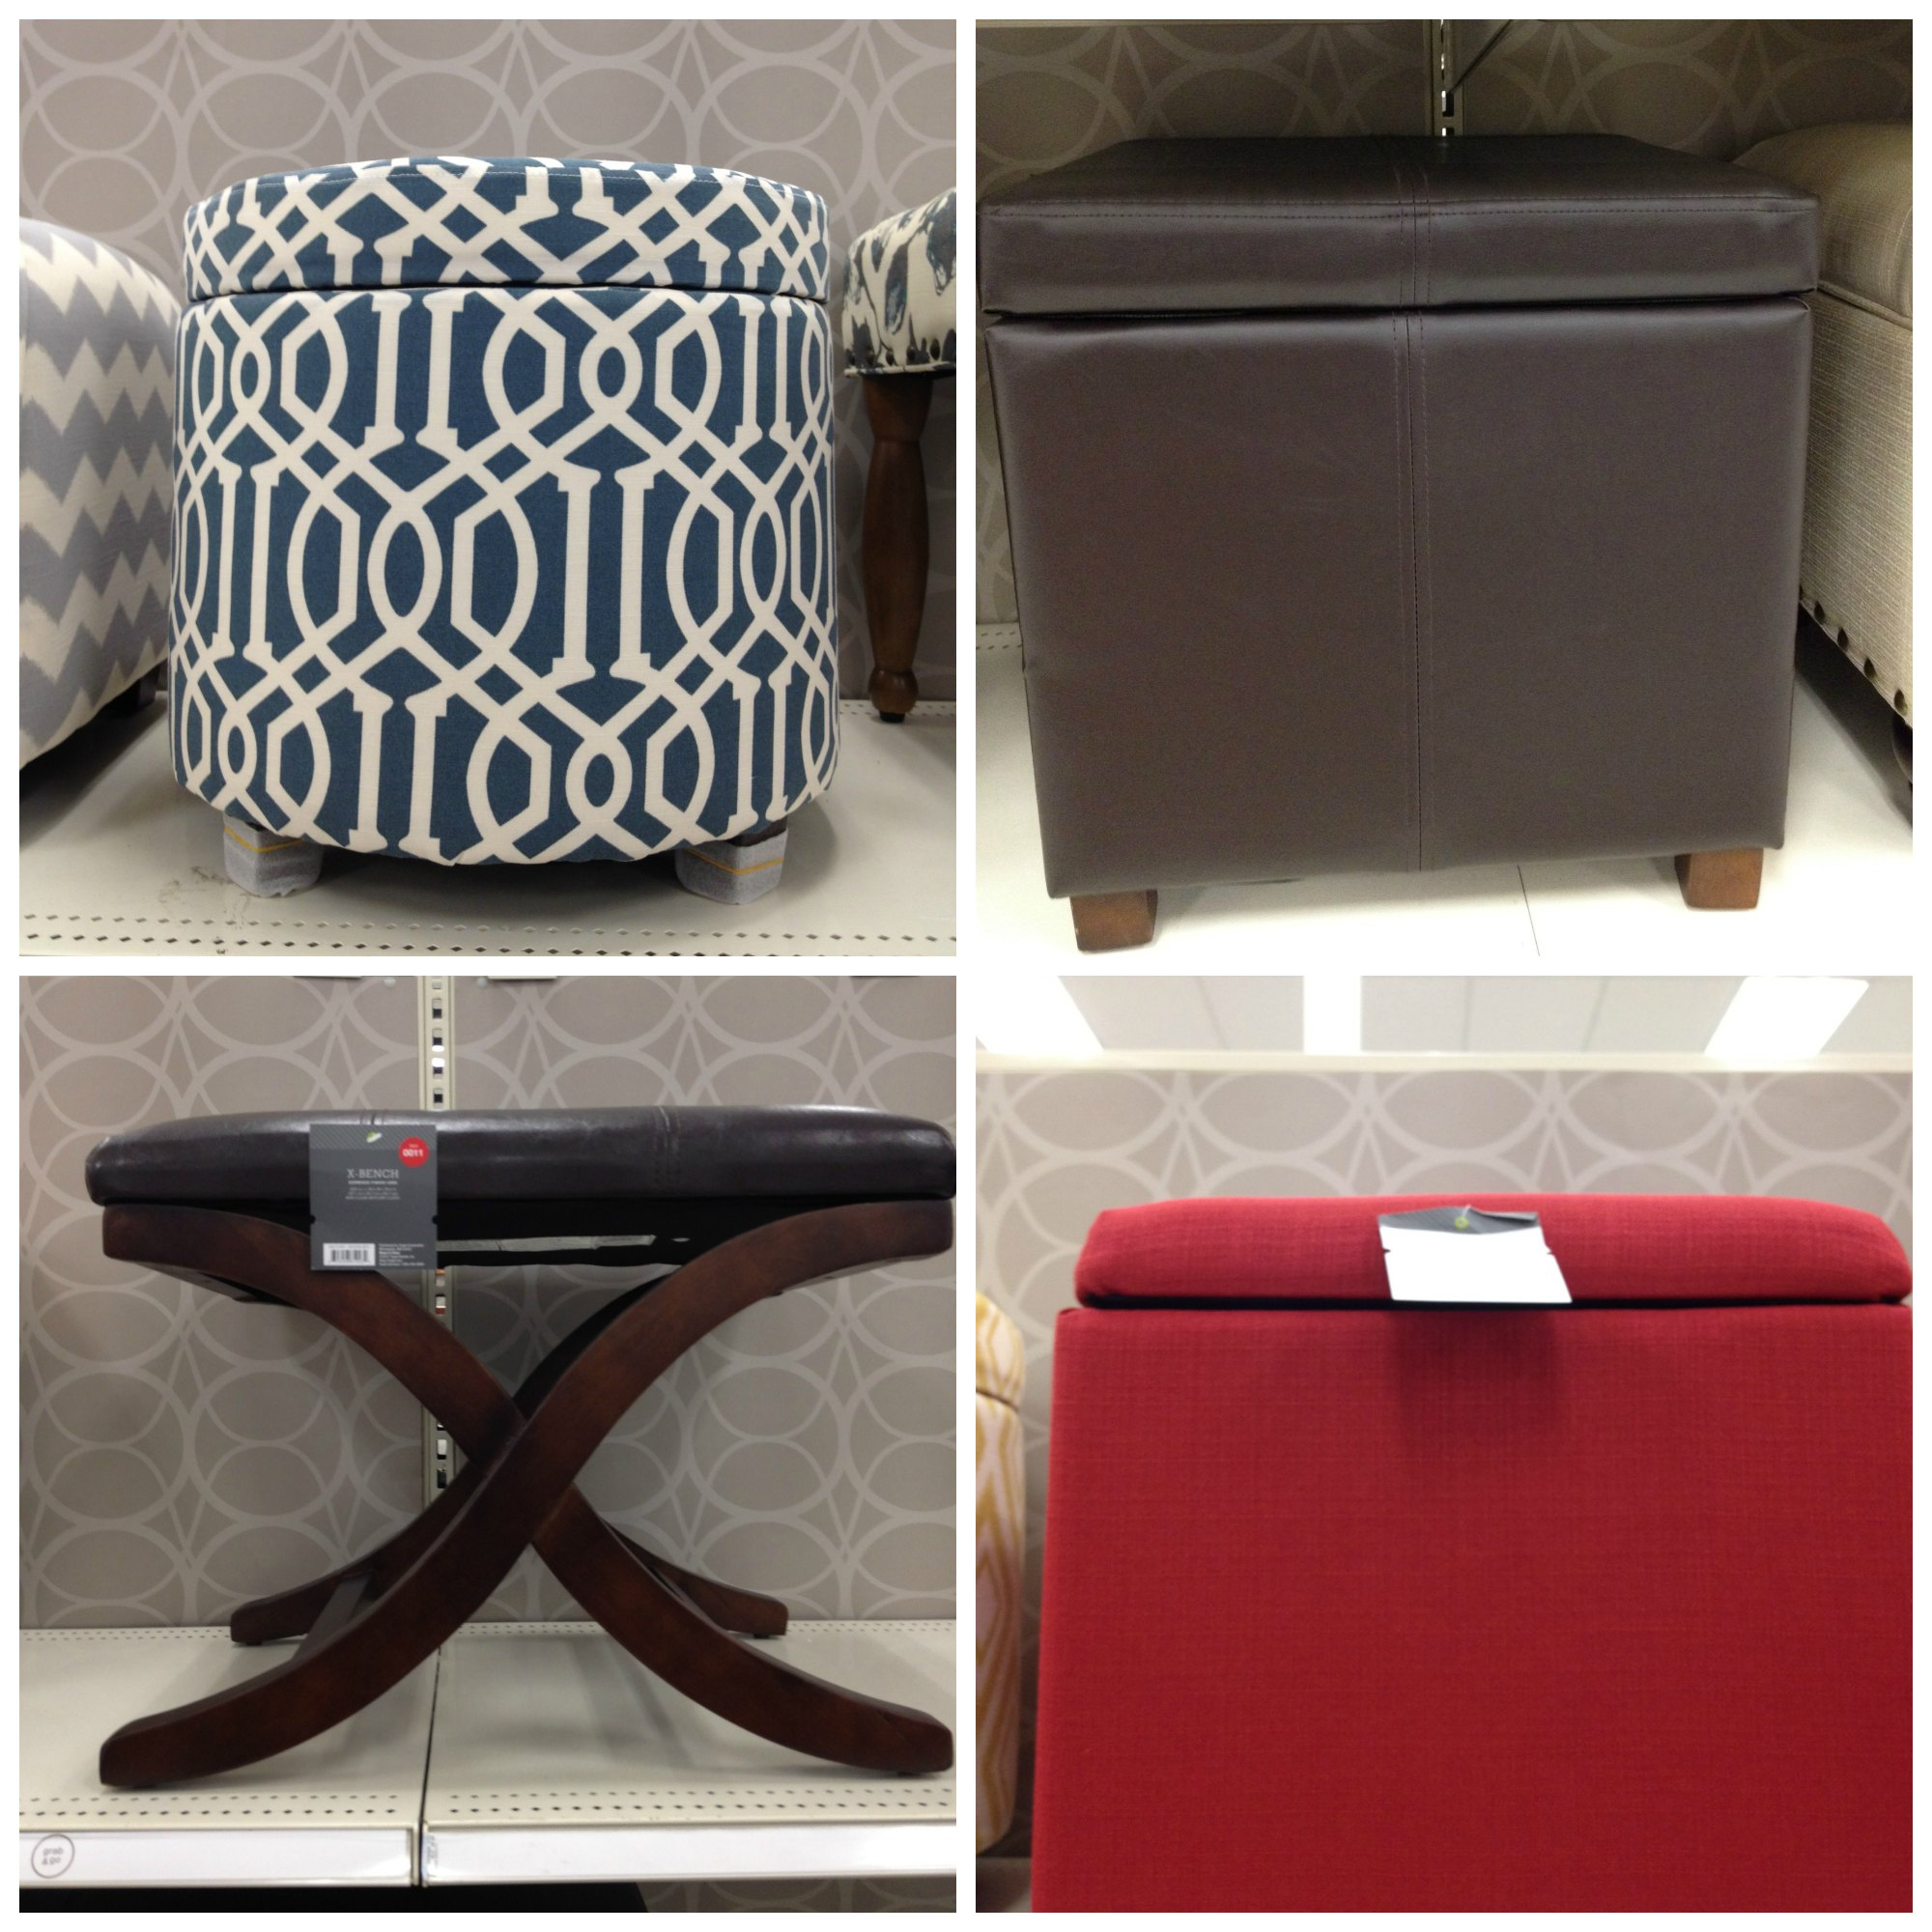 fabric storage table ikea leather rectangular small navy pottery upholstered target round ottoman blanket tufted coffee barn rectangle genuine square ottomans pouf